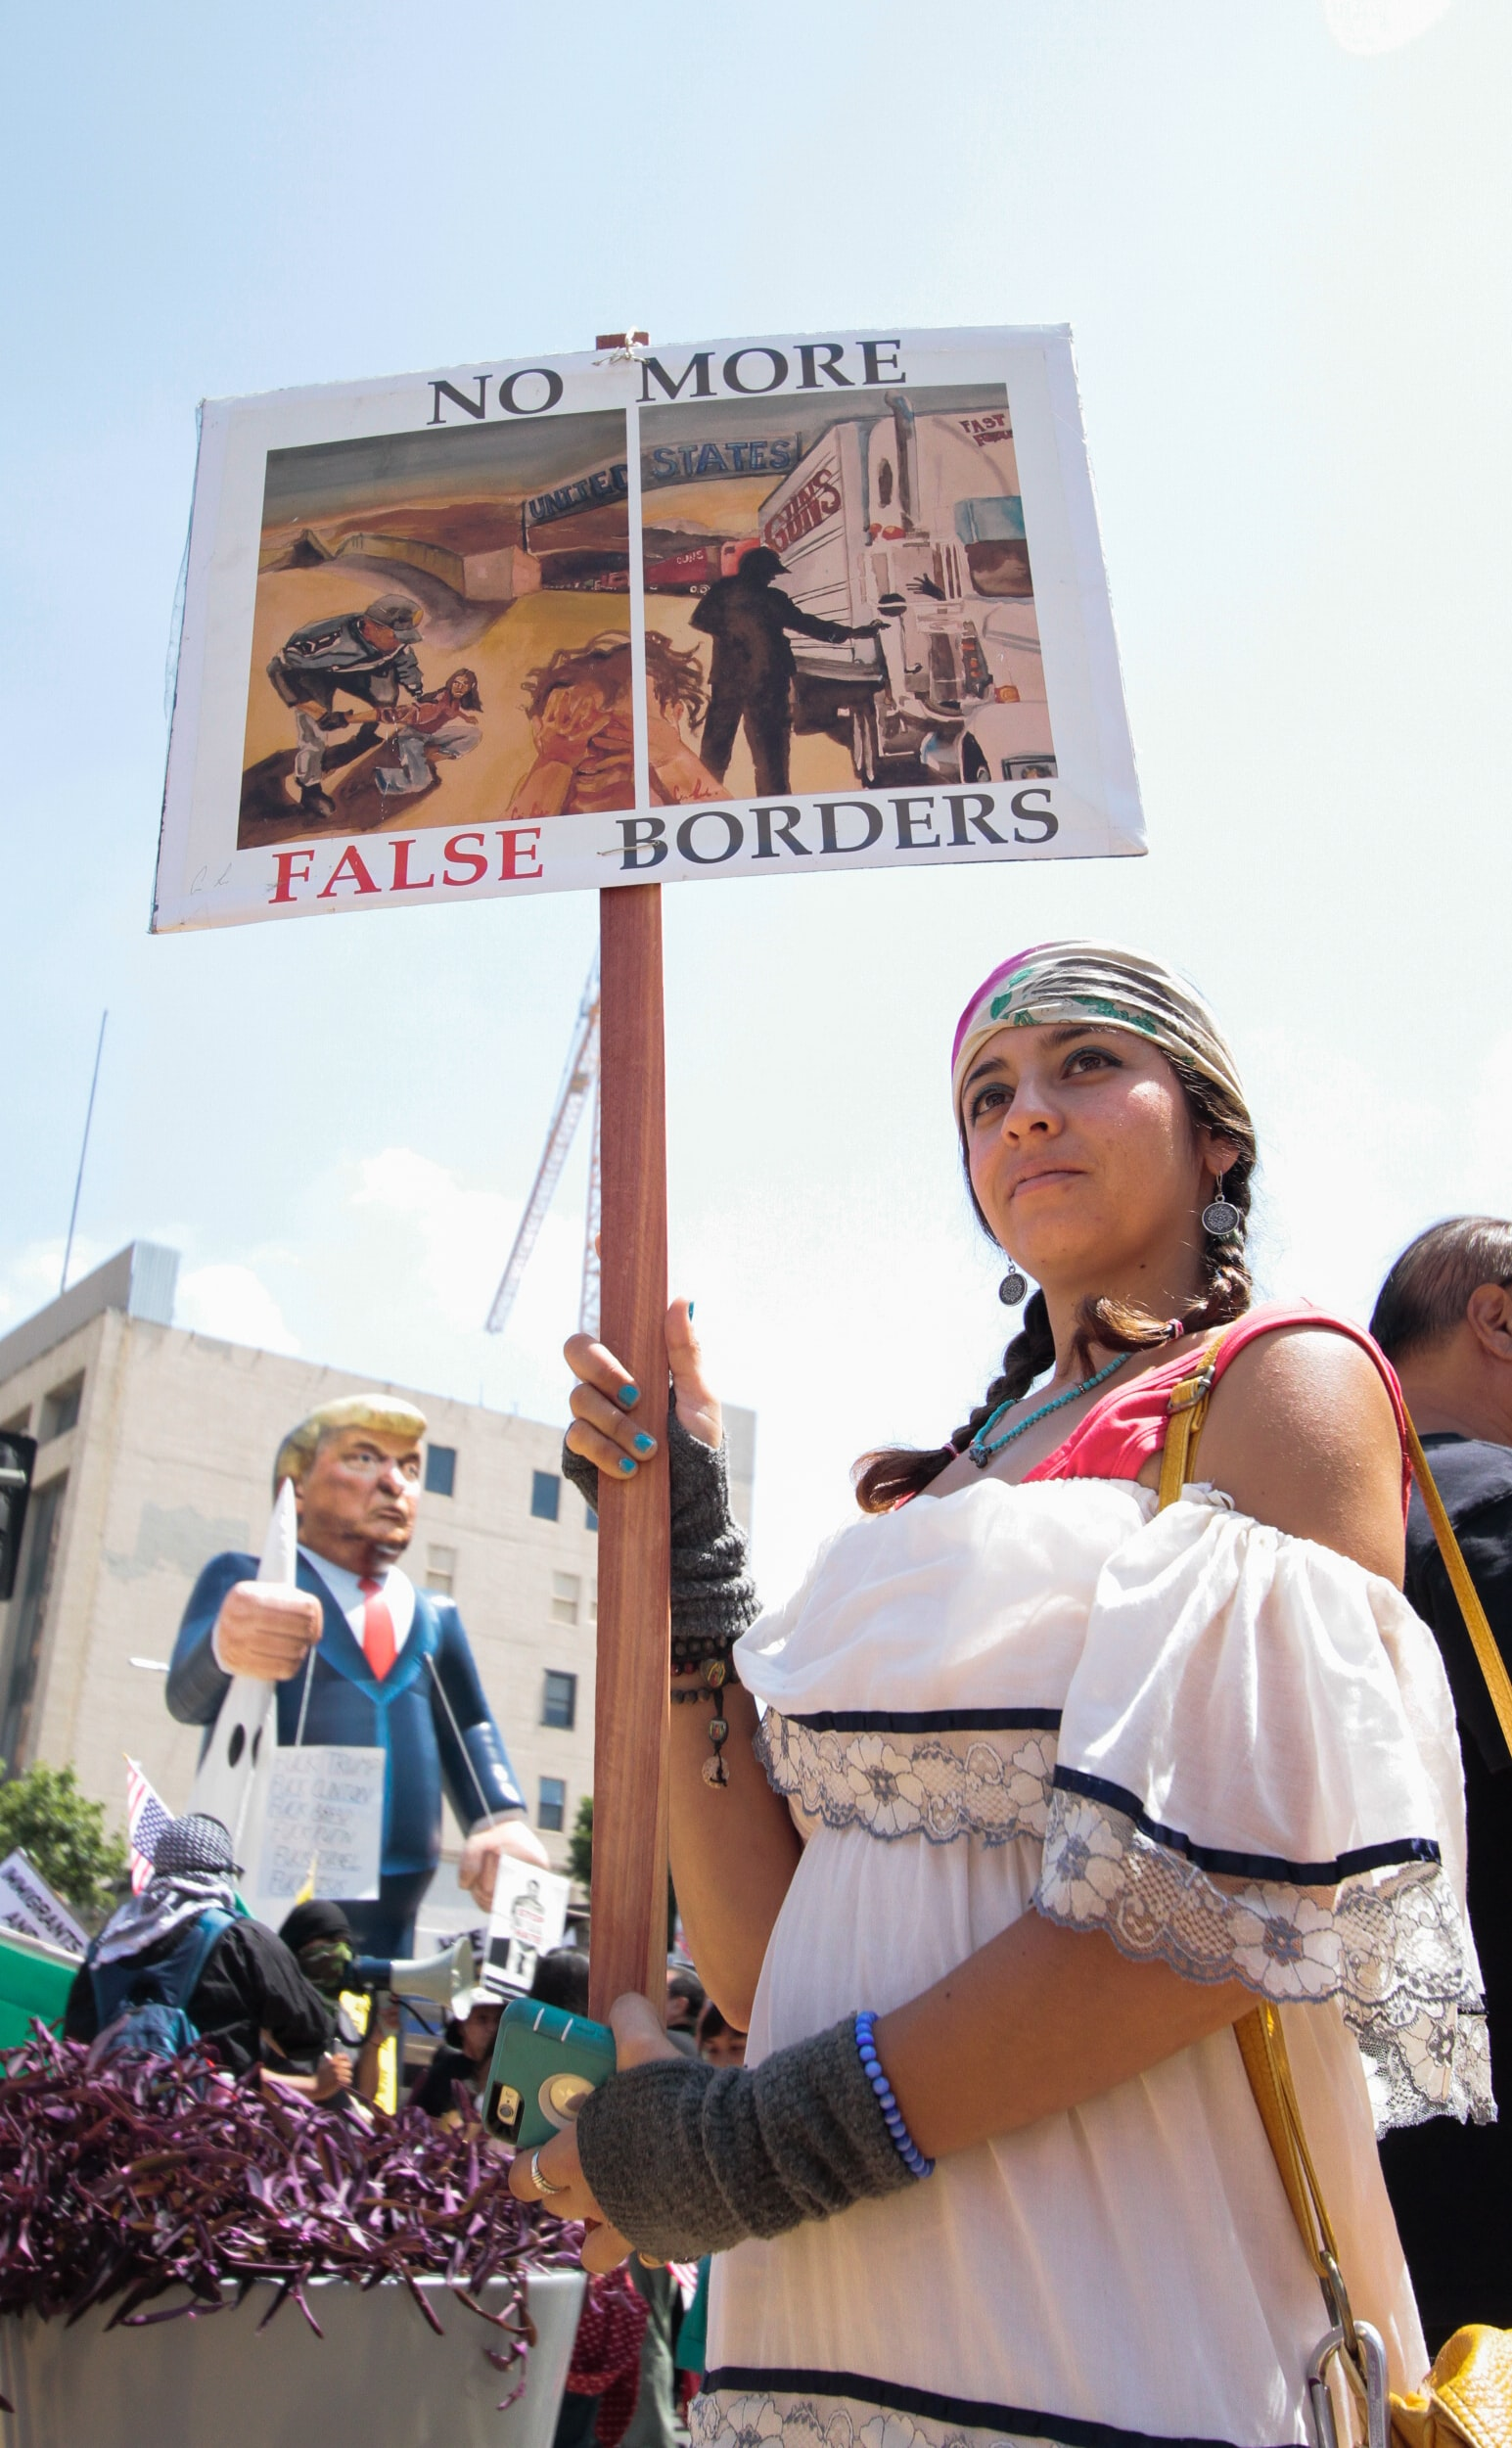 woman protesting holding no more false borders-printed board signage